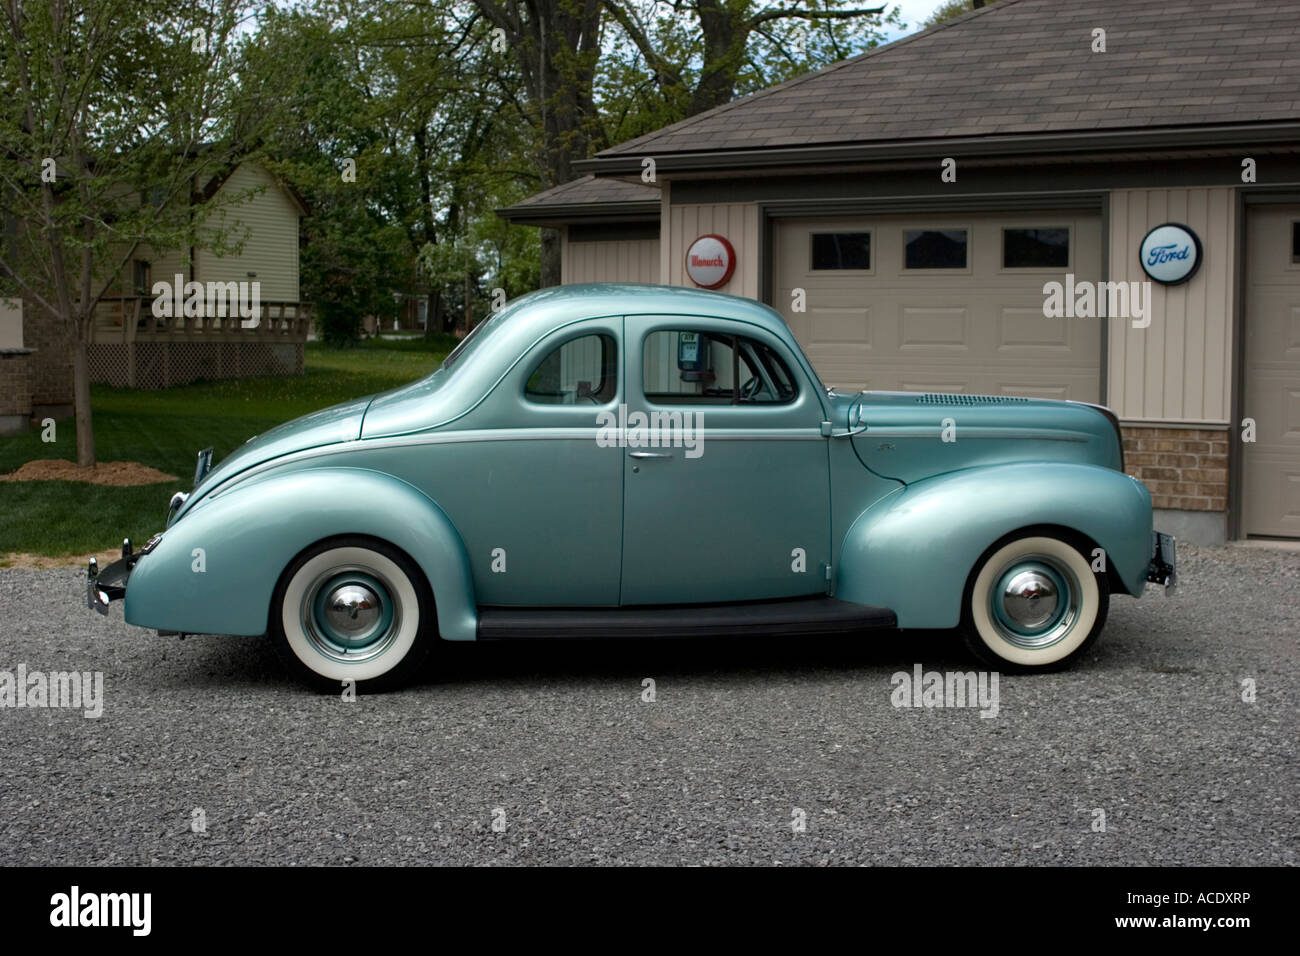 1940 Ford Coupe High Resolution Stock Photography And Images Alamy